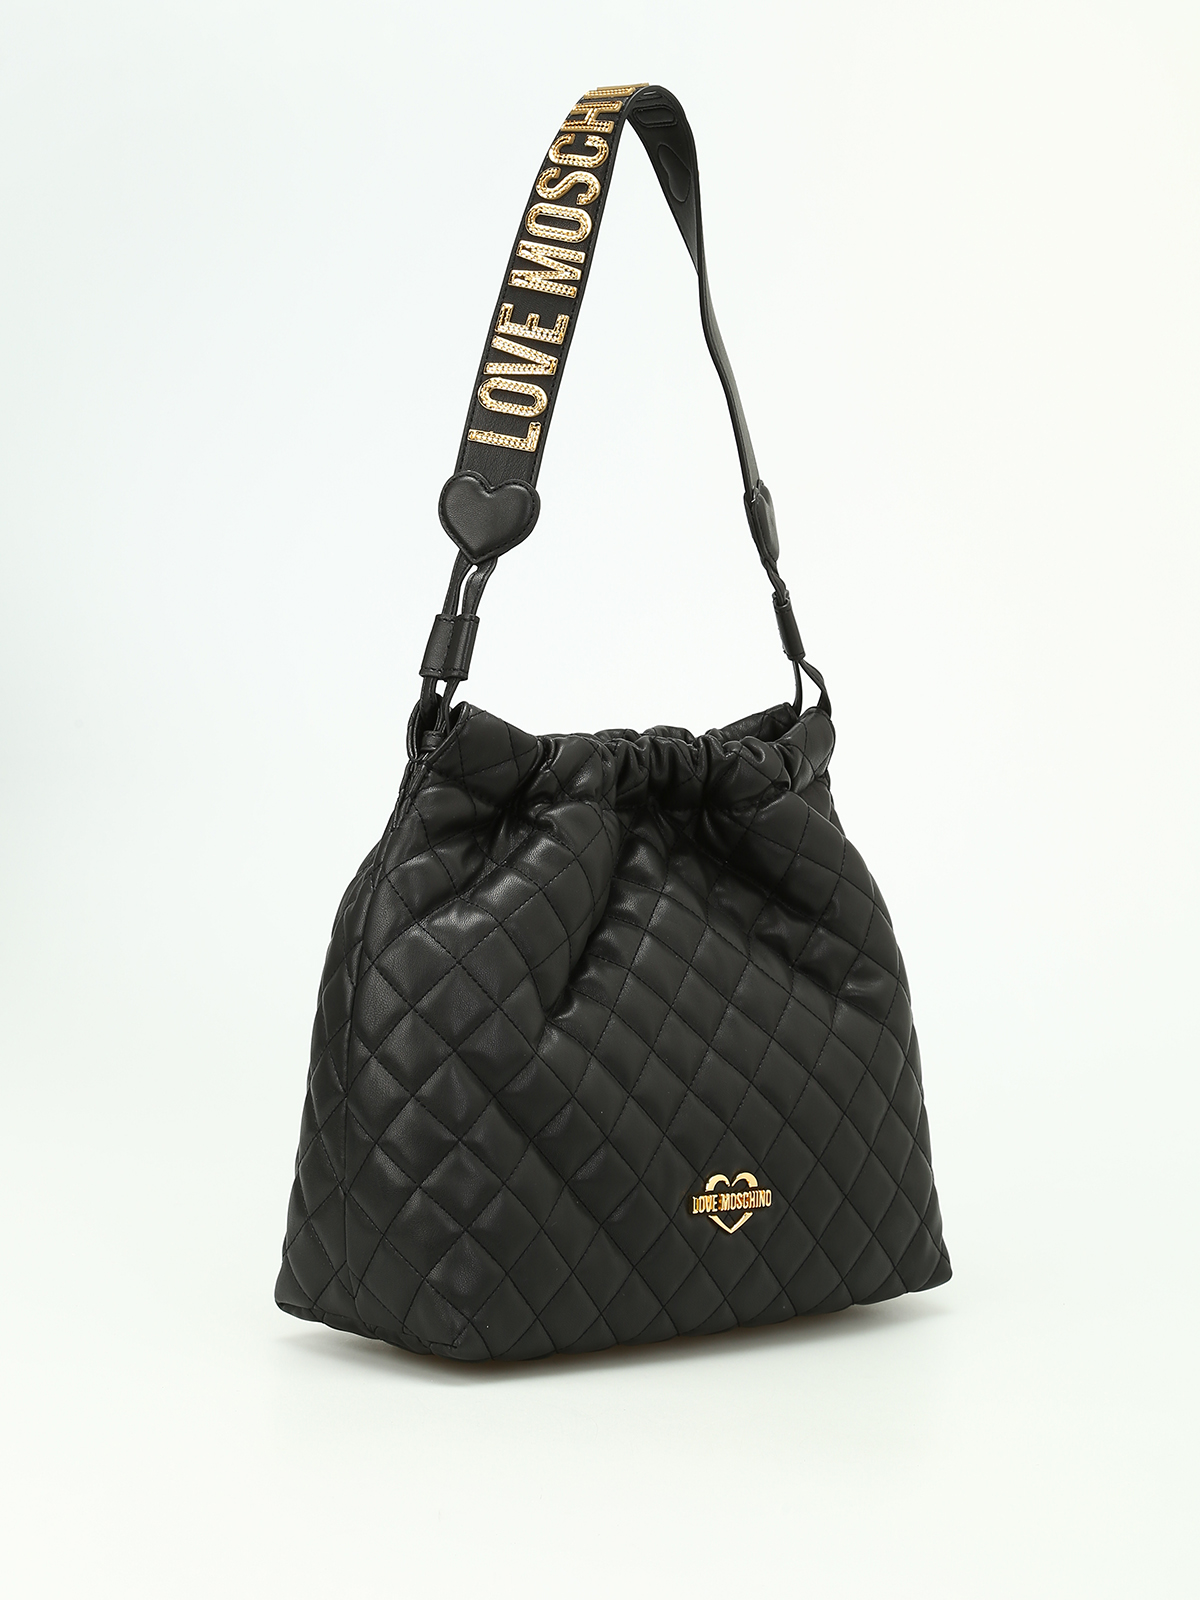 LOVE MOSCHINO  shoulder bags online - Quilted nappa shoulder bag 3c11fa04d8f05